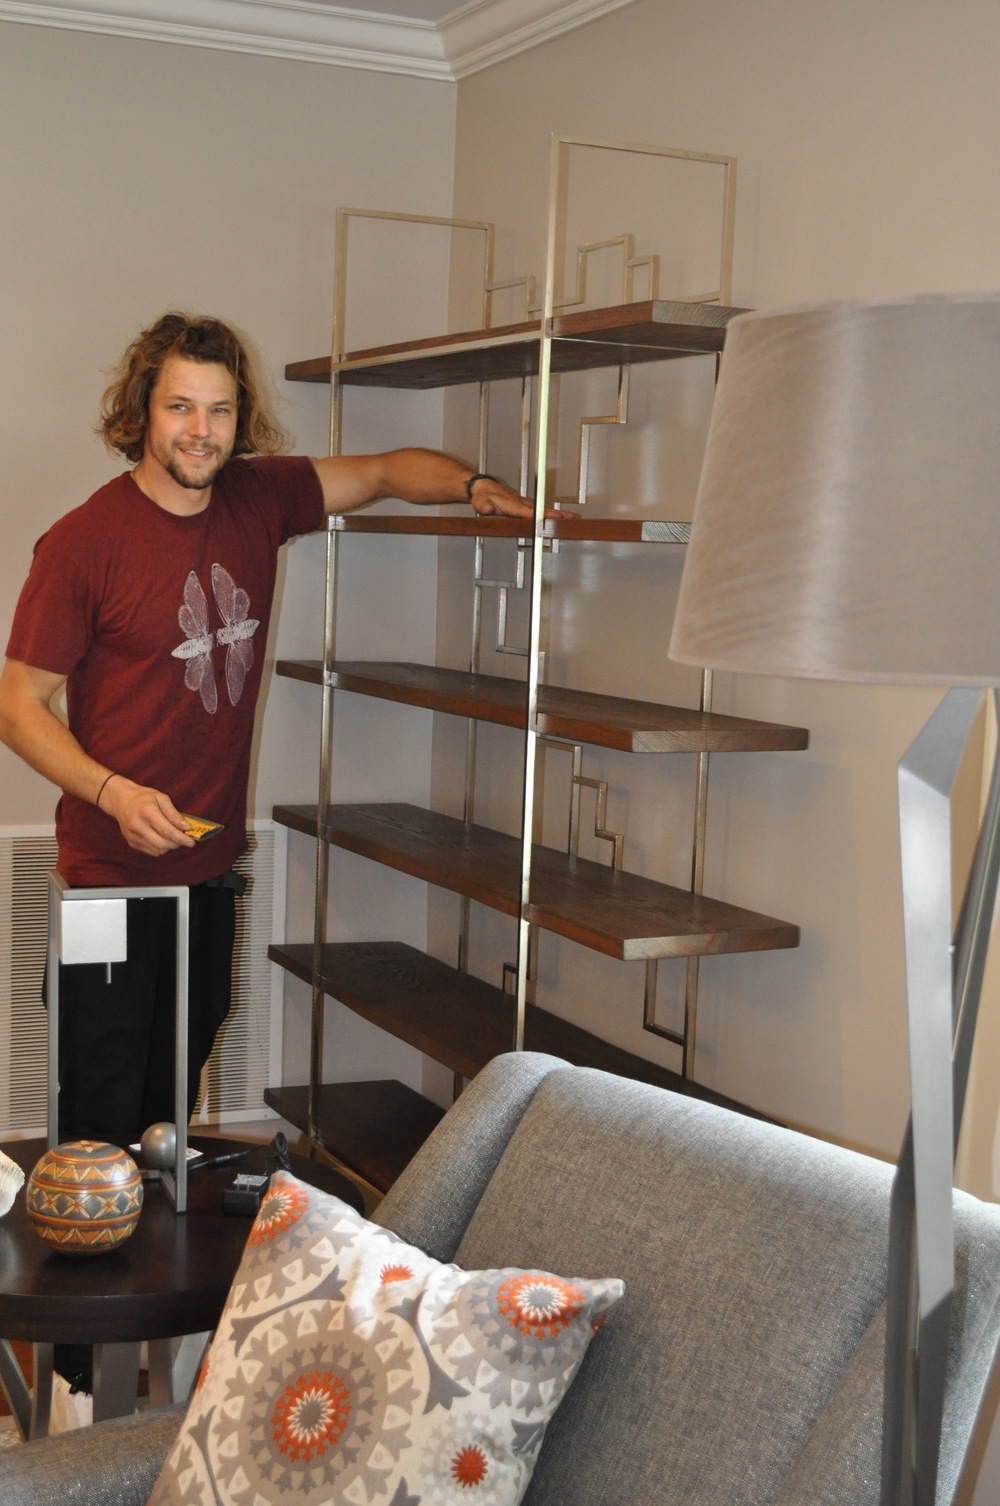 #321_LR_Shelving_Mats_StagingDay - 1.jpg